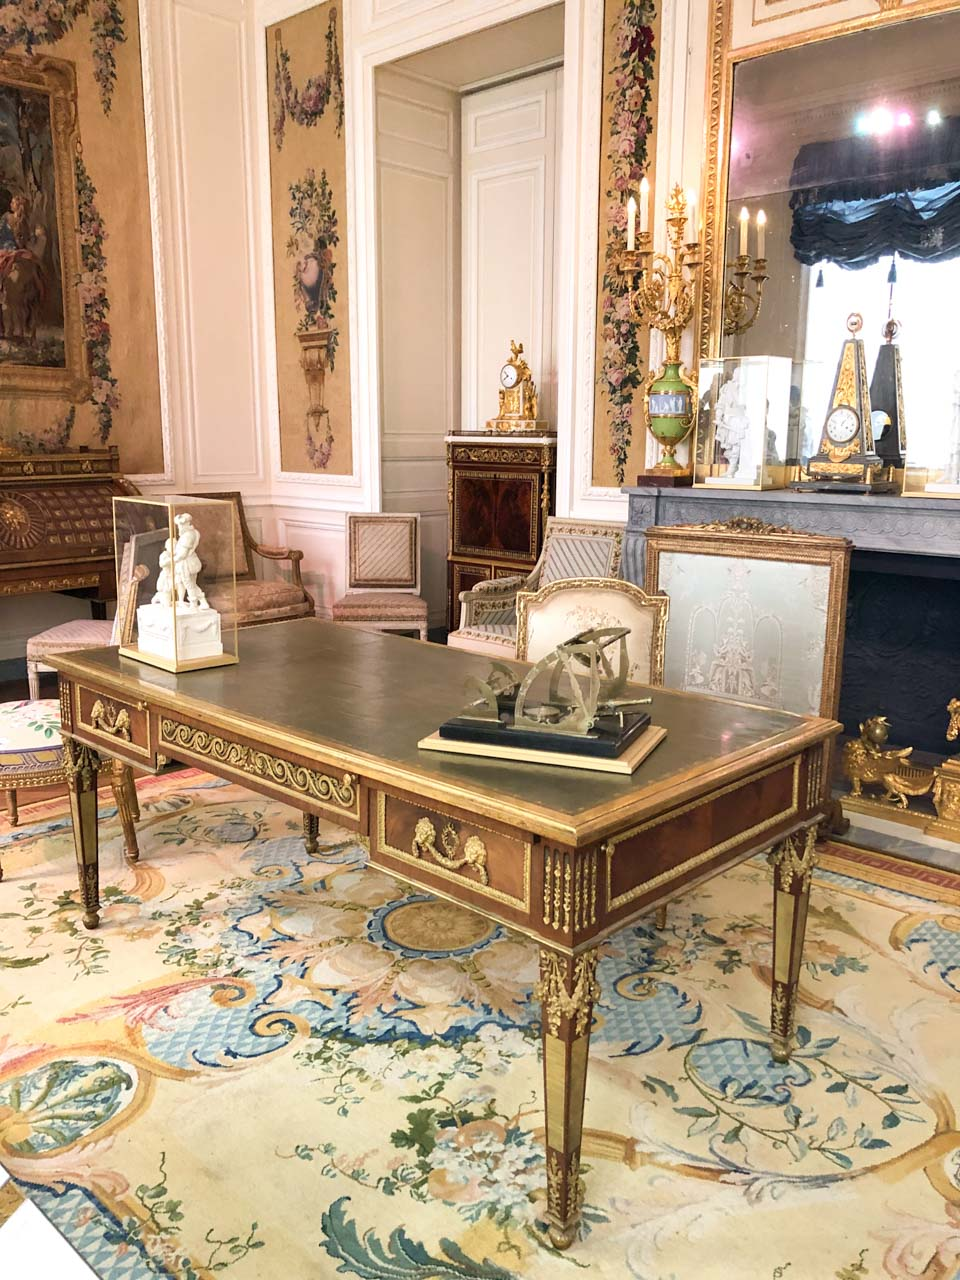 """A beautifully carved wooden desk in the ornately decorated """"From Louis XIV to Louis XVI"""" rooms in the Louvre Museum in Paris, France"""